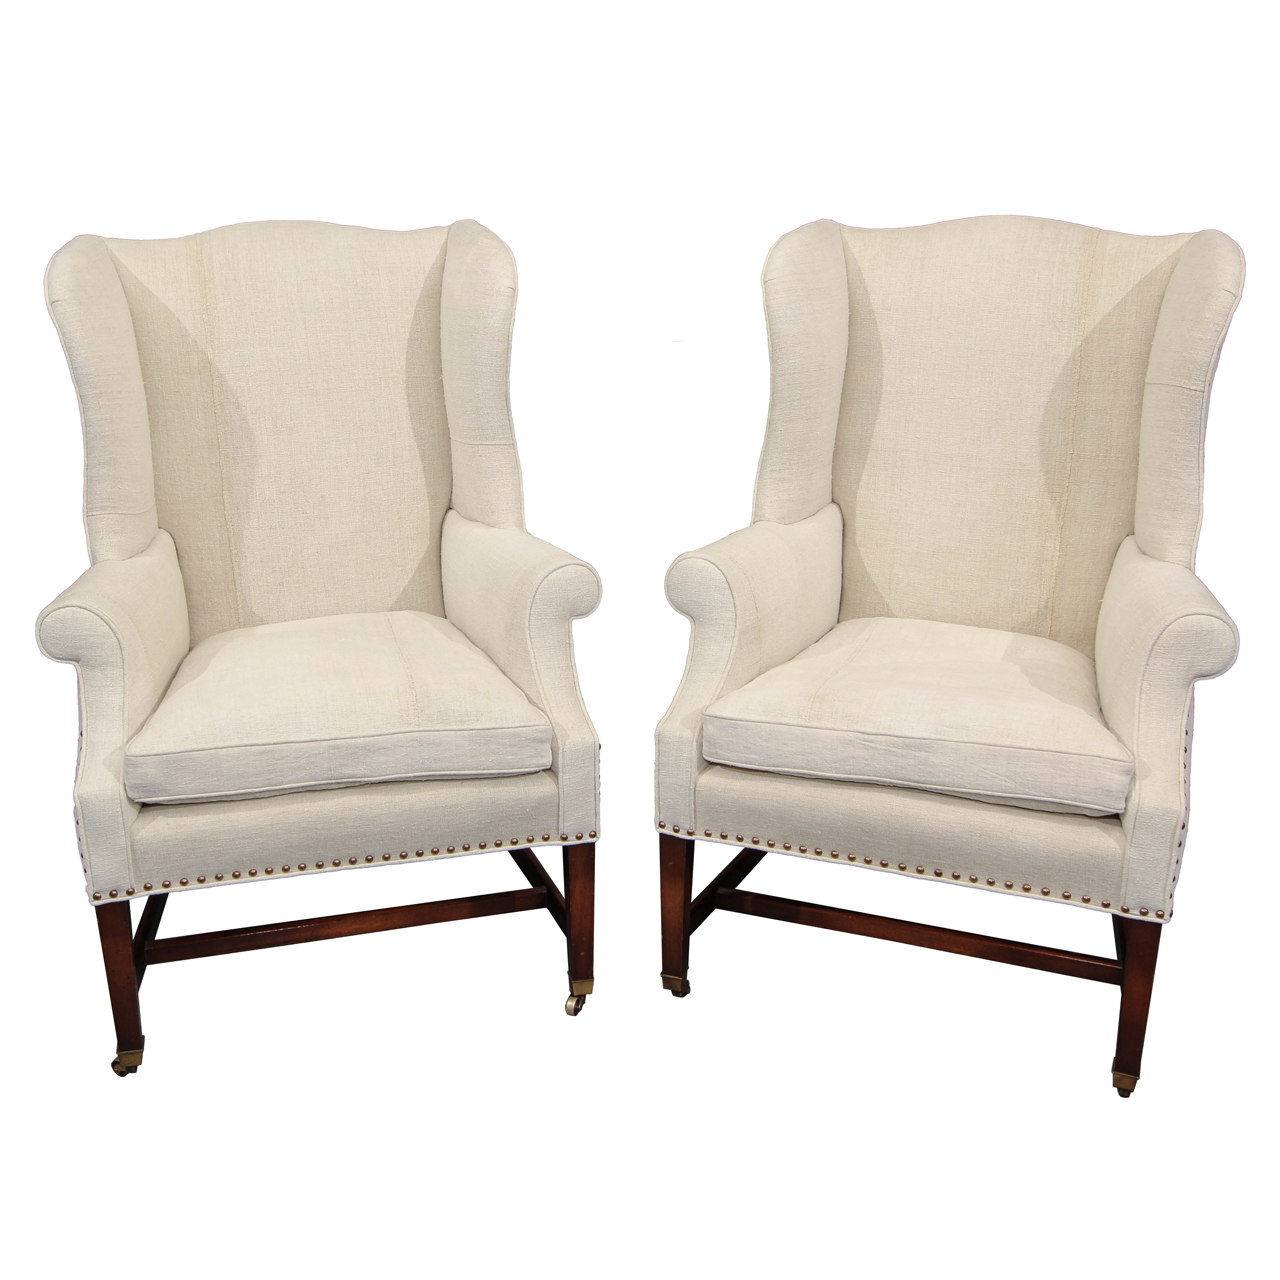 Small Wingback Chairs For Dining Room